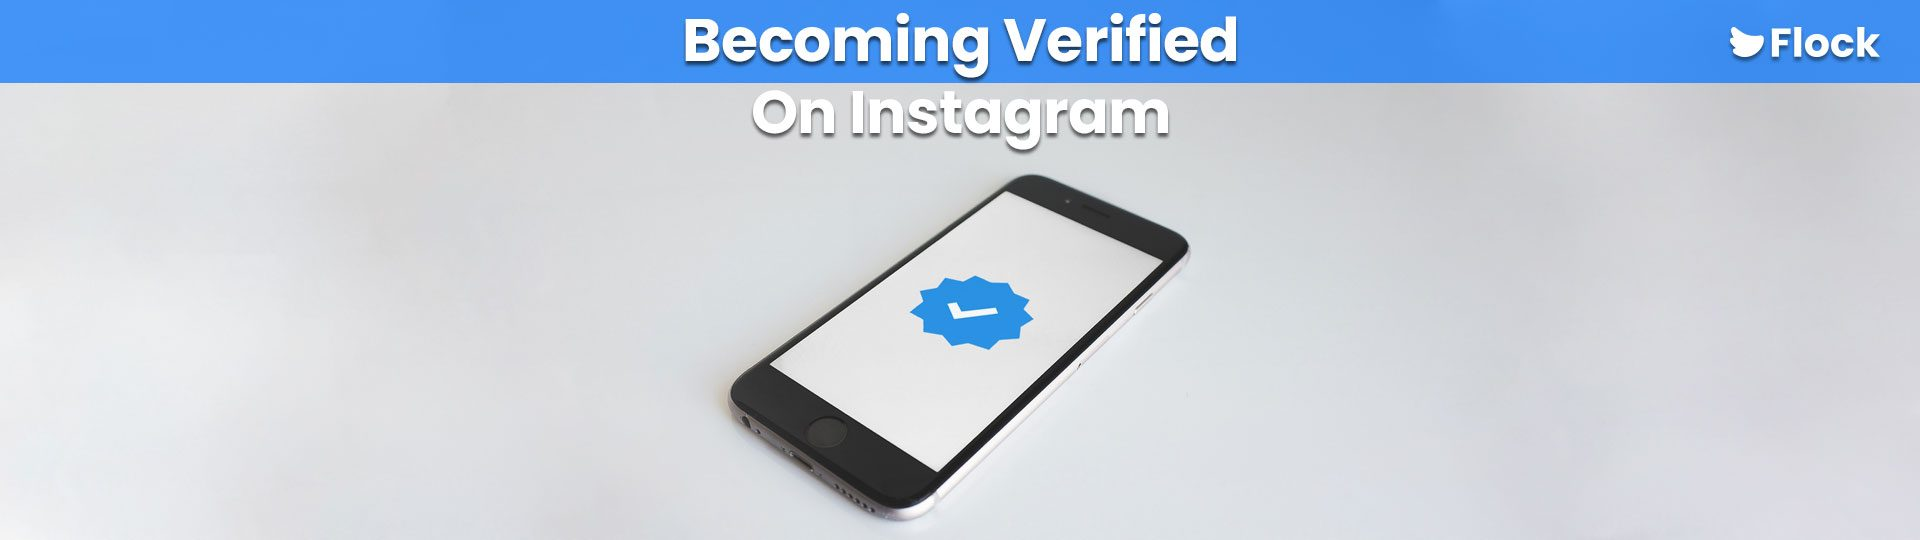 Becoming verified